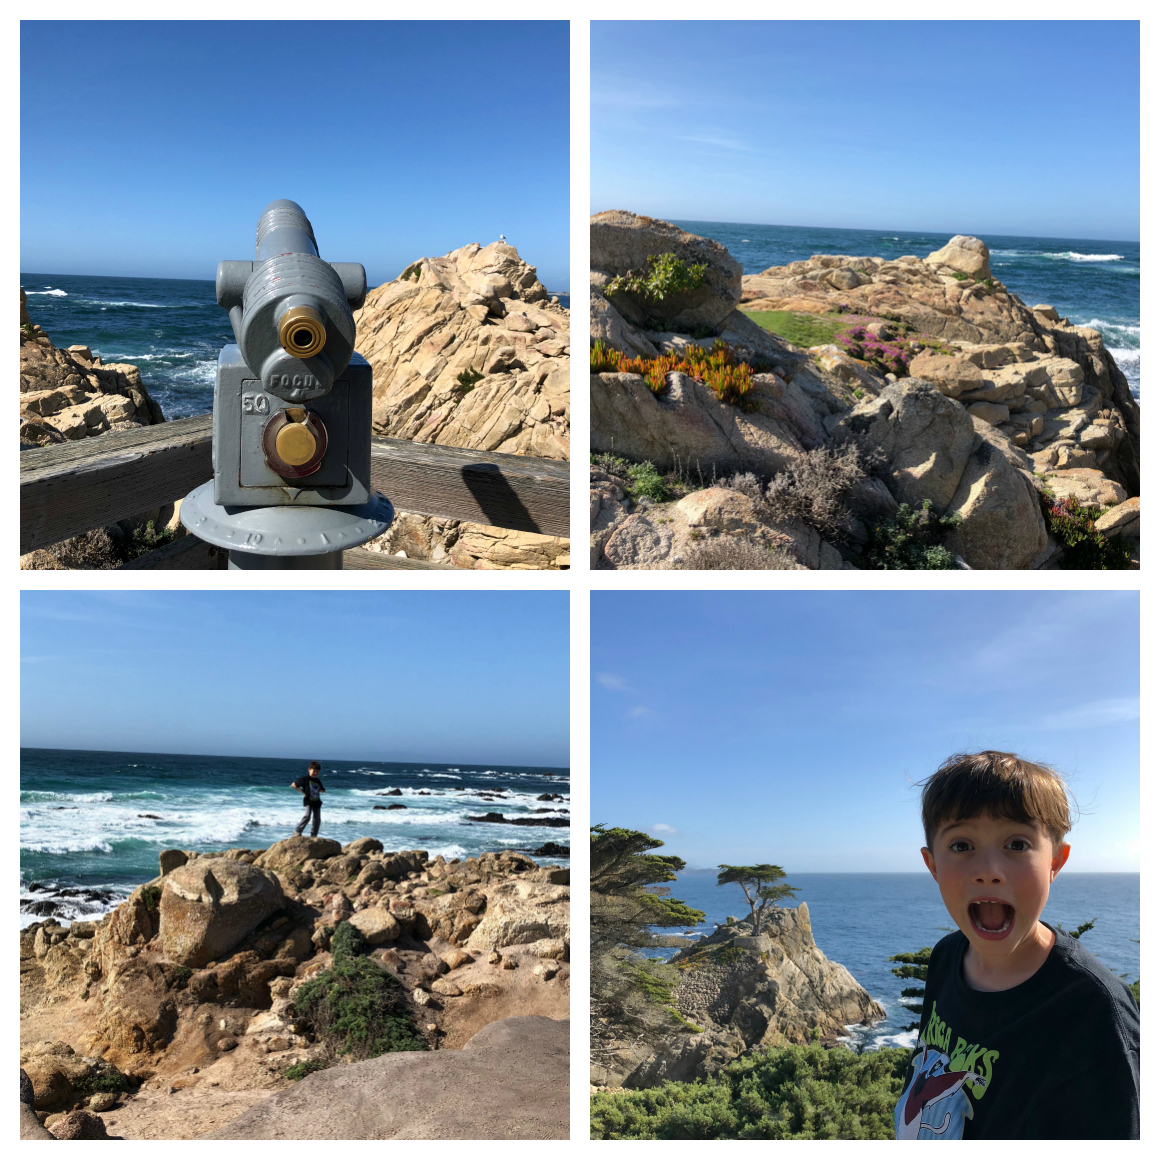 17 mile drive Pebble beach with kids - well traveled kids